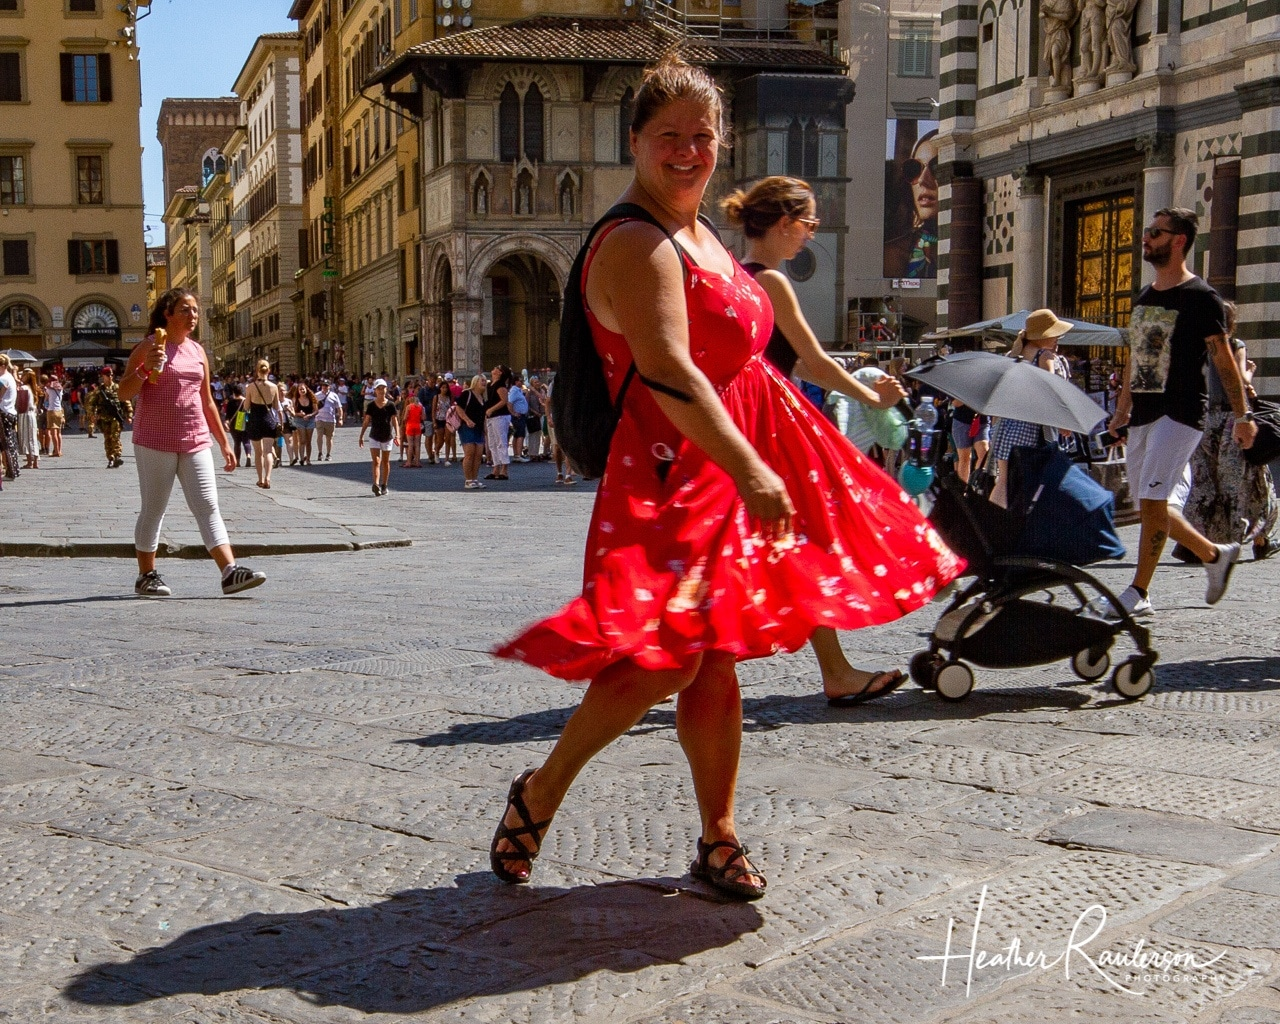 Heather in Florence, Italy